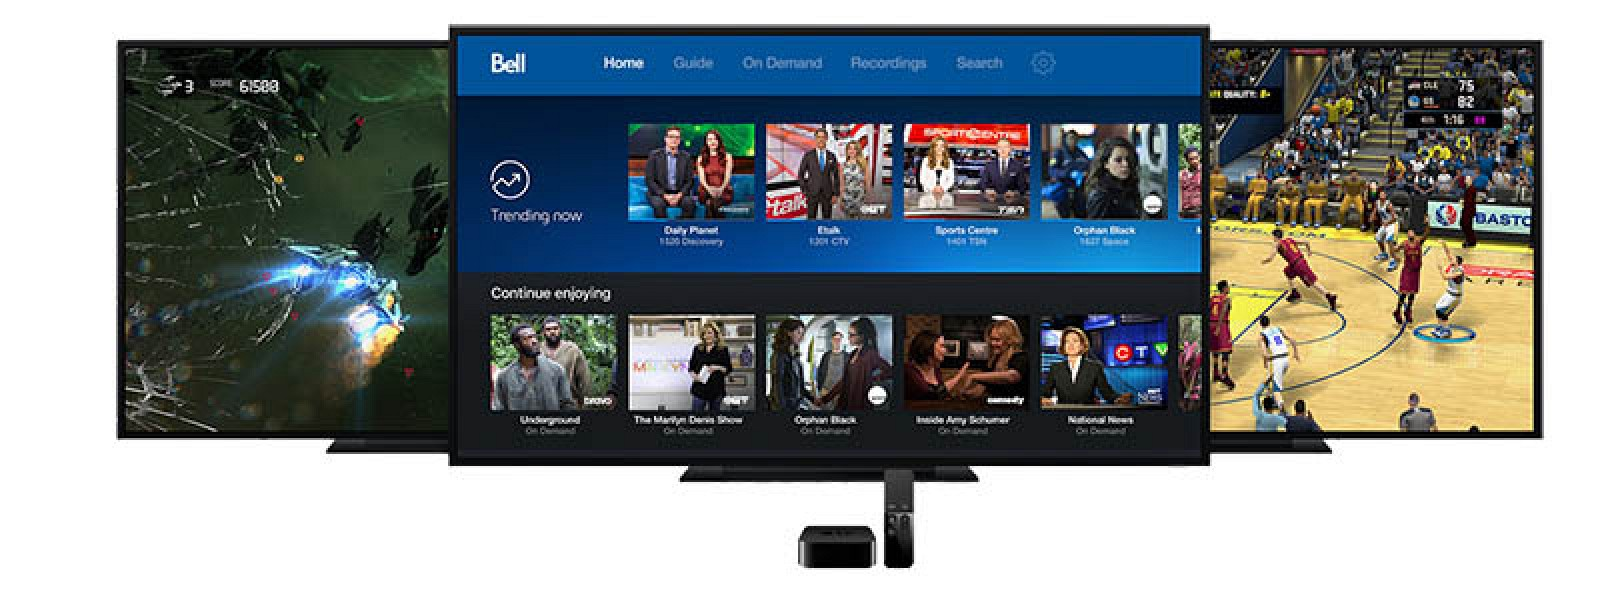 bell fibe apple tv review